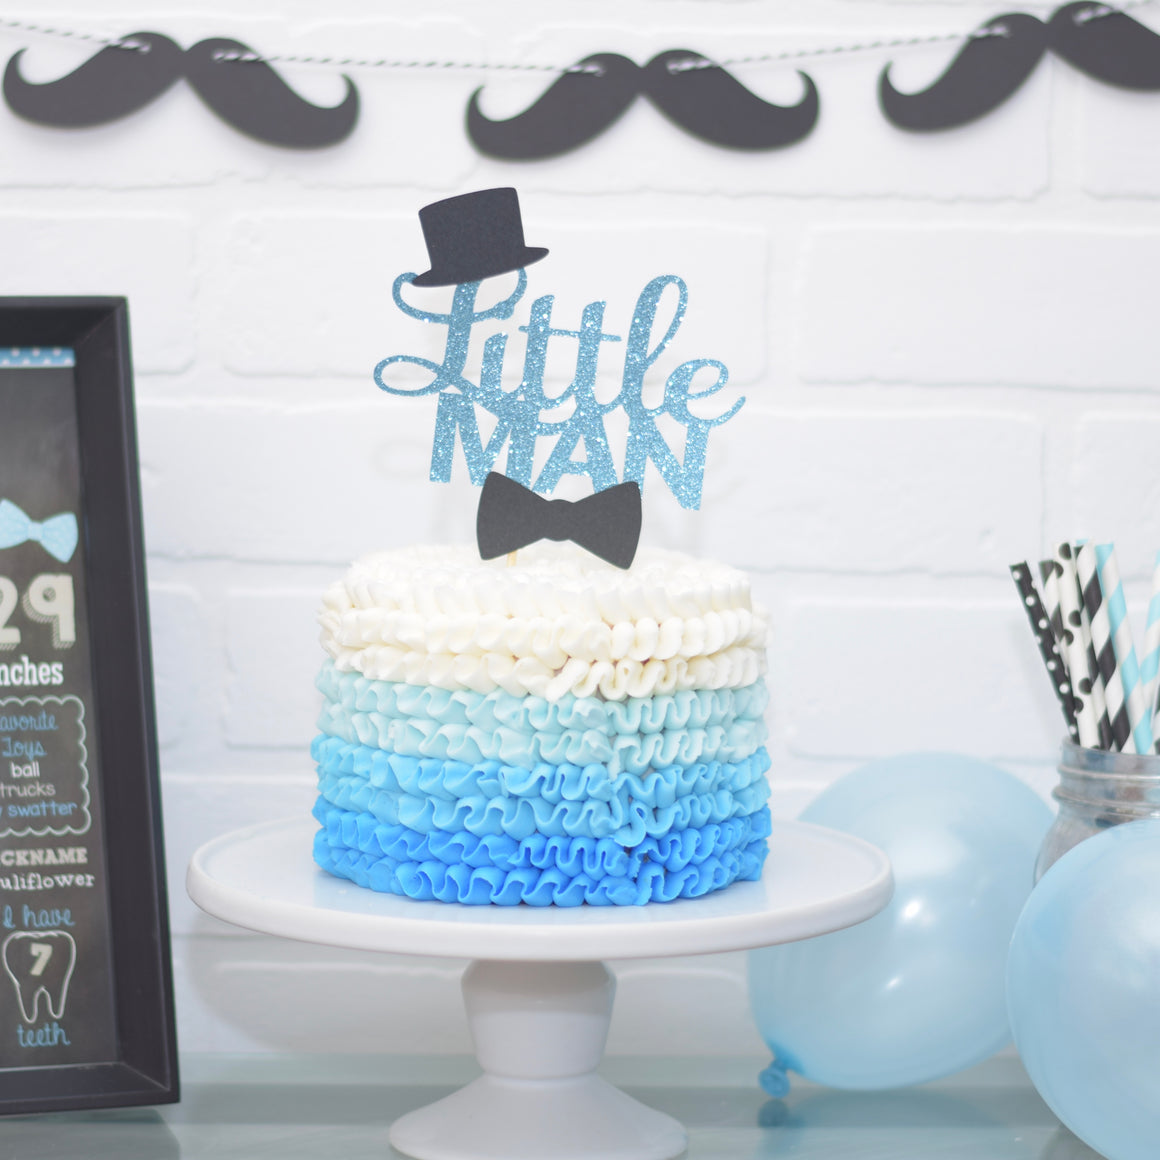 Blue and black little man cake topper on blue ombre cake